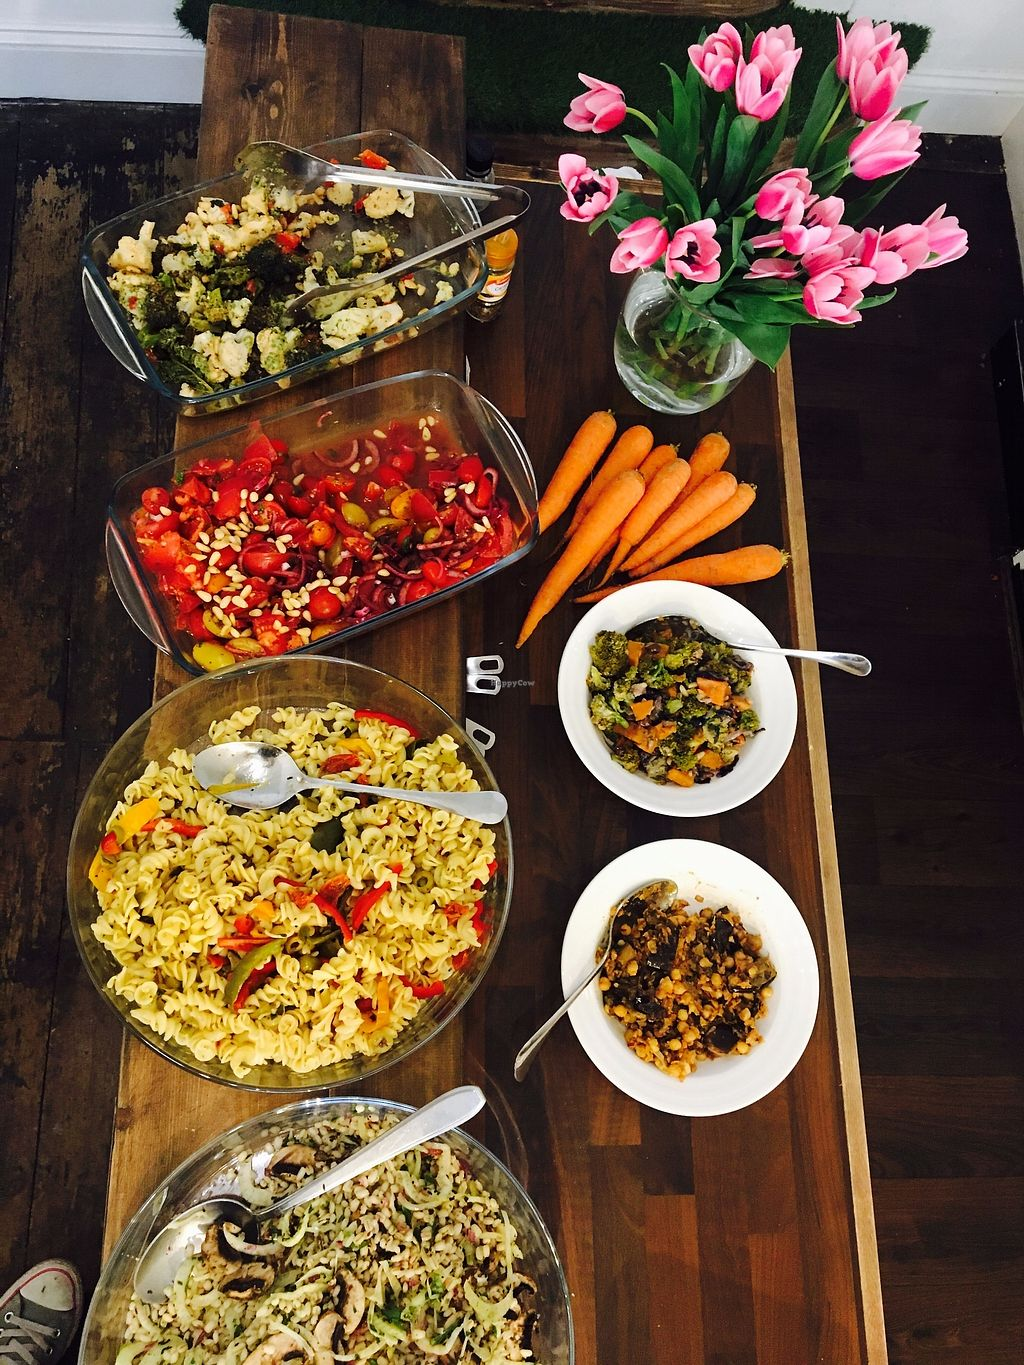 """Photo of Retreat Kitchen  by <a href=""""/members/profile/ClaireLangdon"""">ClaireLangdon</a> <br/>Our weekday Salad Bar <br/> August 16, 2017  - <a href='/contact/abuse/image/87349/293378'>Report</a>"""